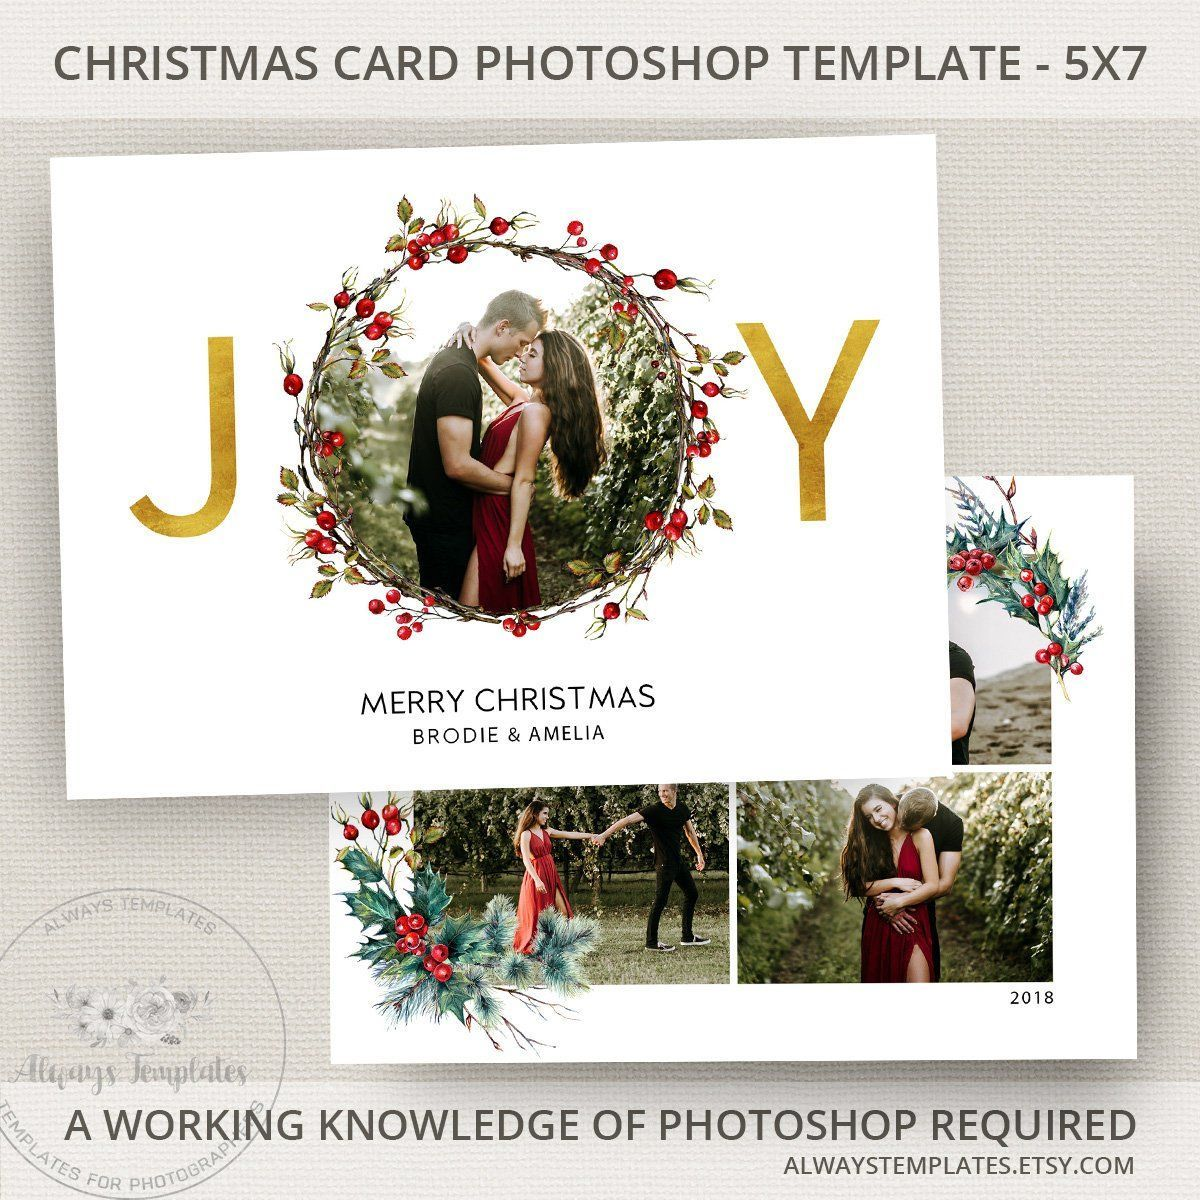 The Exciting Joy Photo Christmas Card Template Joy Christmas Car Christmas Card Templates Free Christmas Photo Card Template Photoshop Christmas Card Template